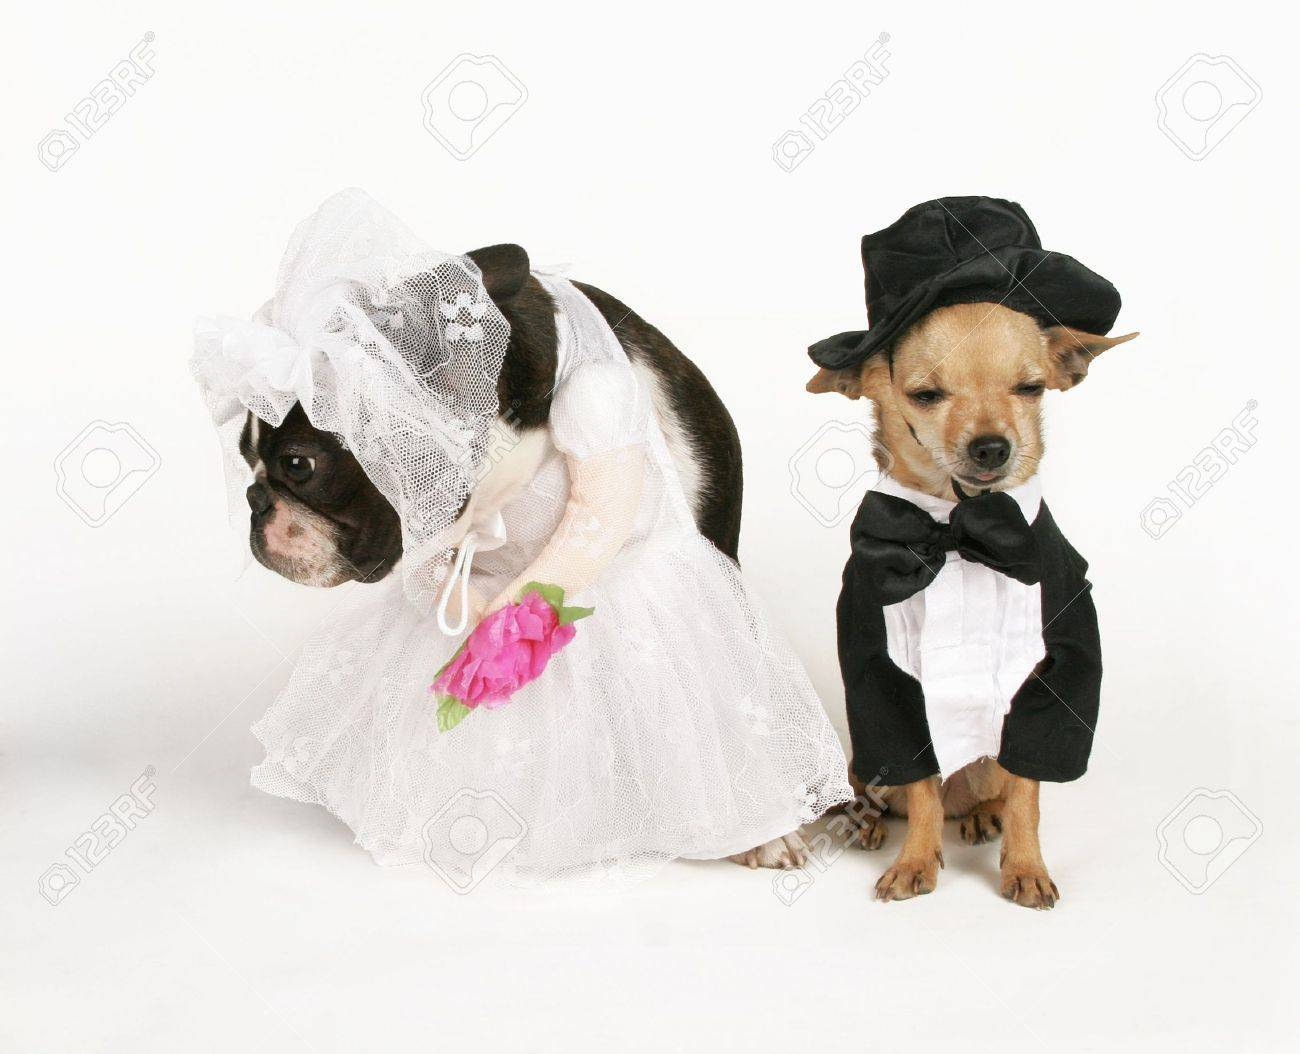 Two Dogs In Wedding Attire Getting Married Stock Photo, Picture And ...